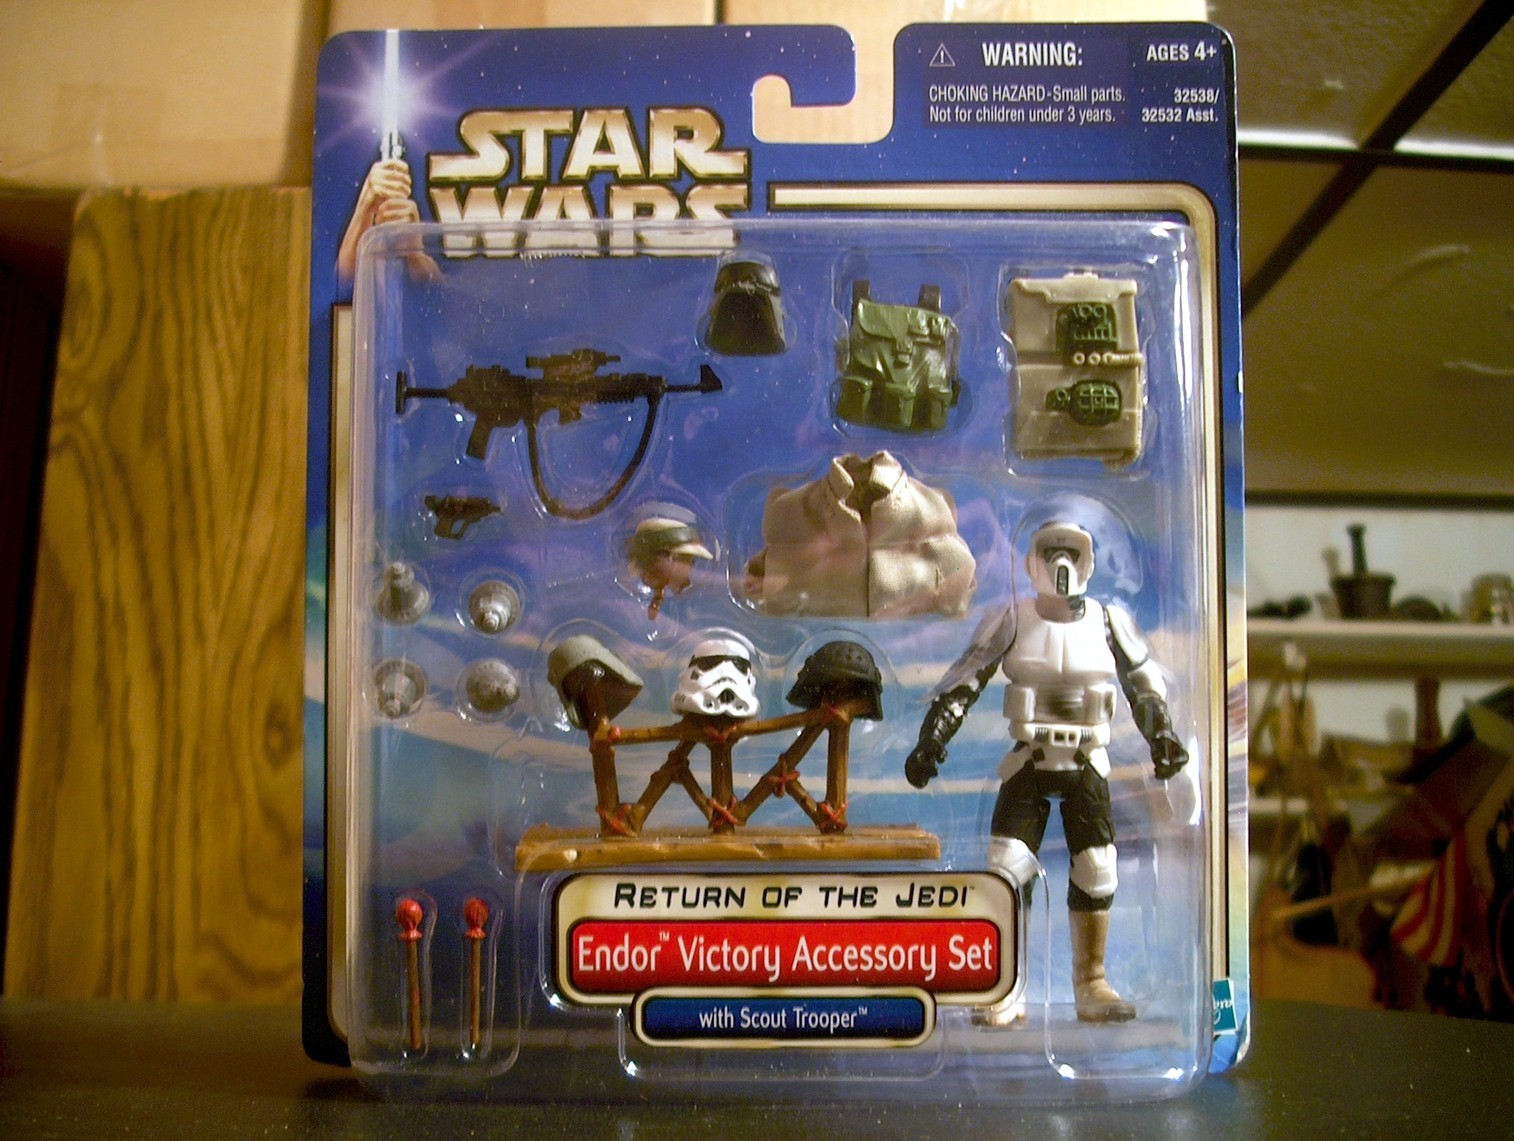 Endor Victory Accessory Set with Scout Trooper